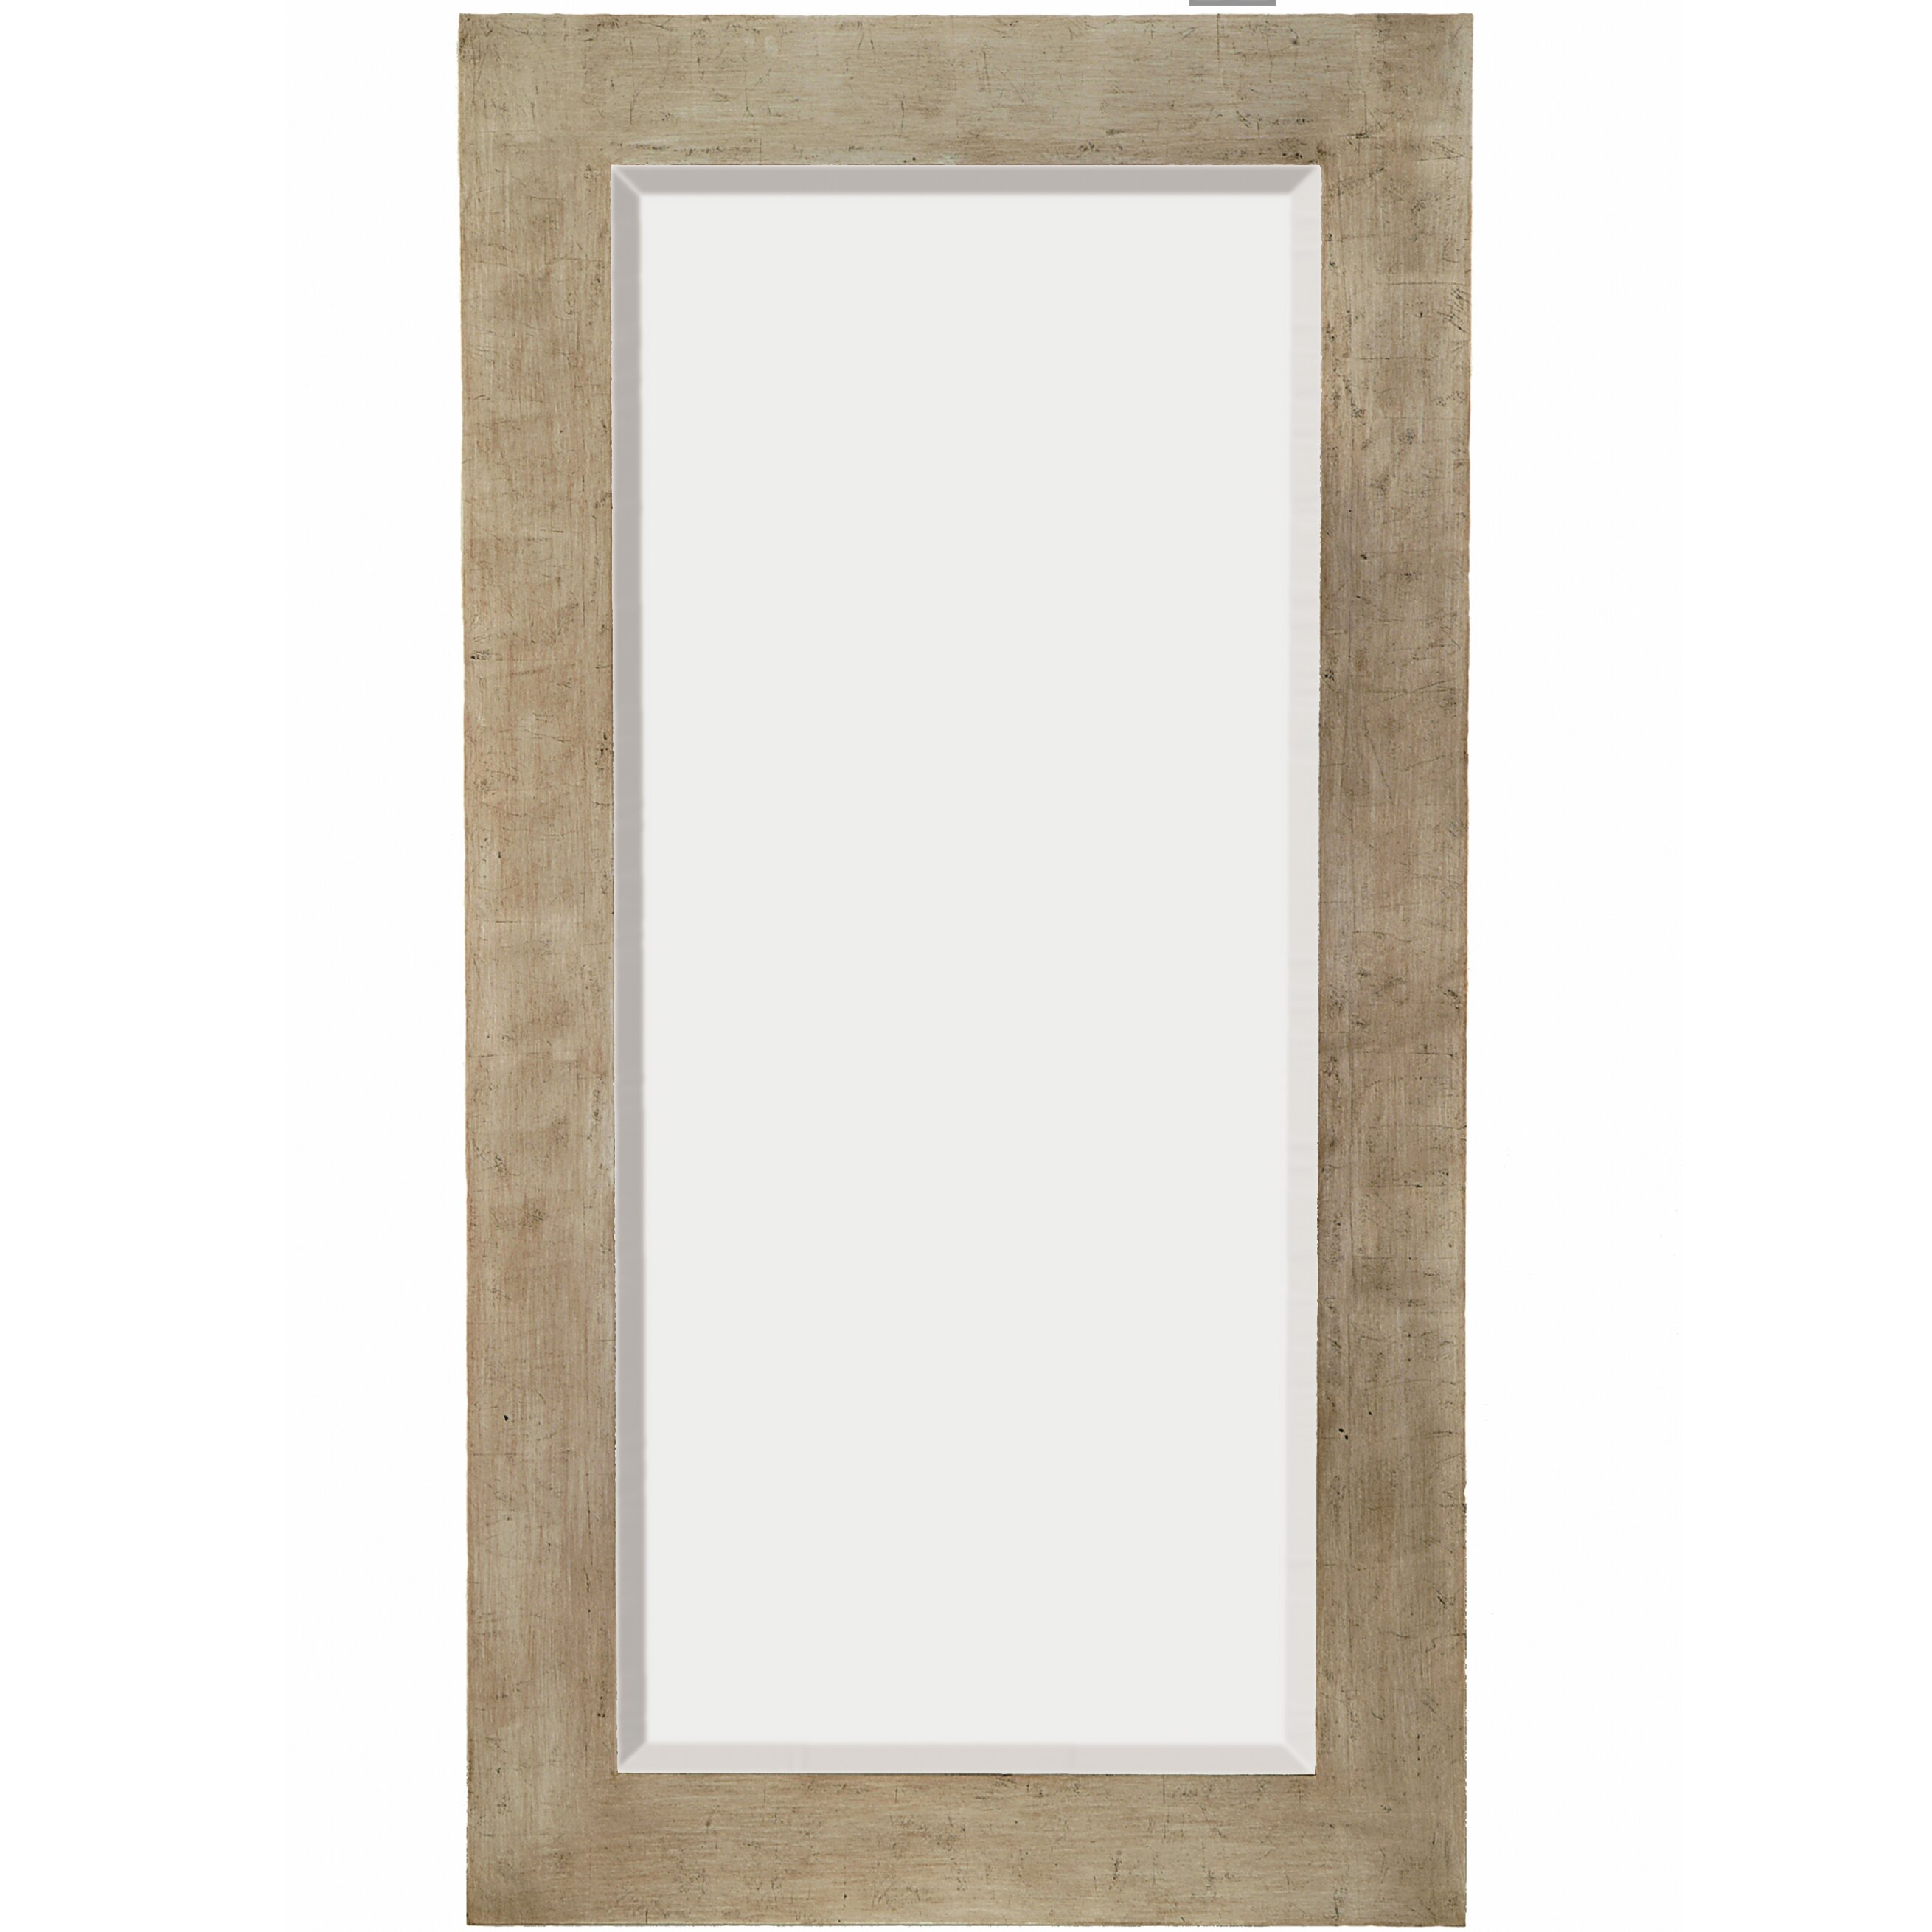 Majestic mirror tall rectangular silver sleek beveled for Tall framed mirror